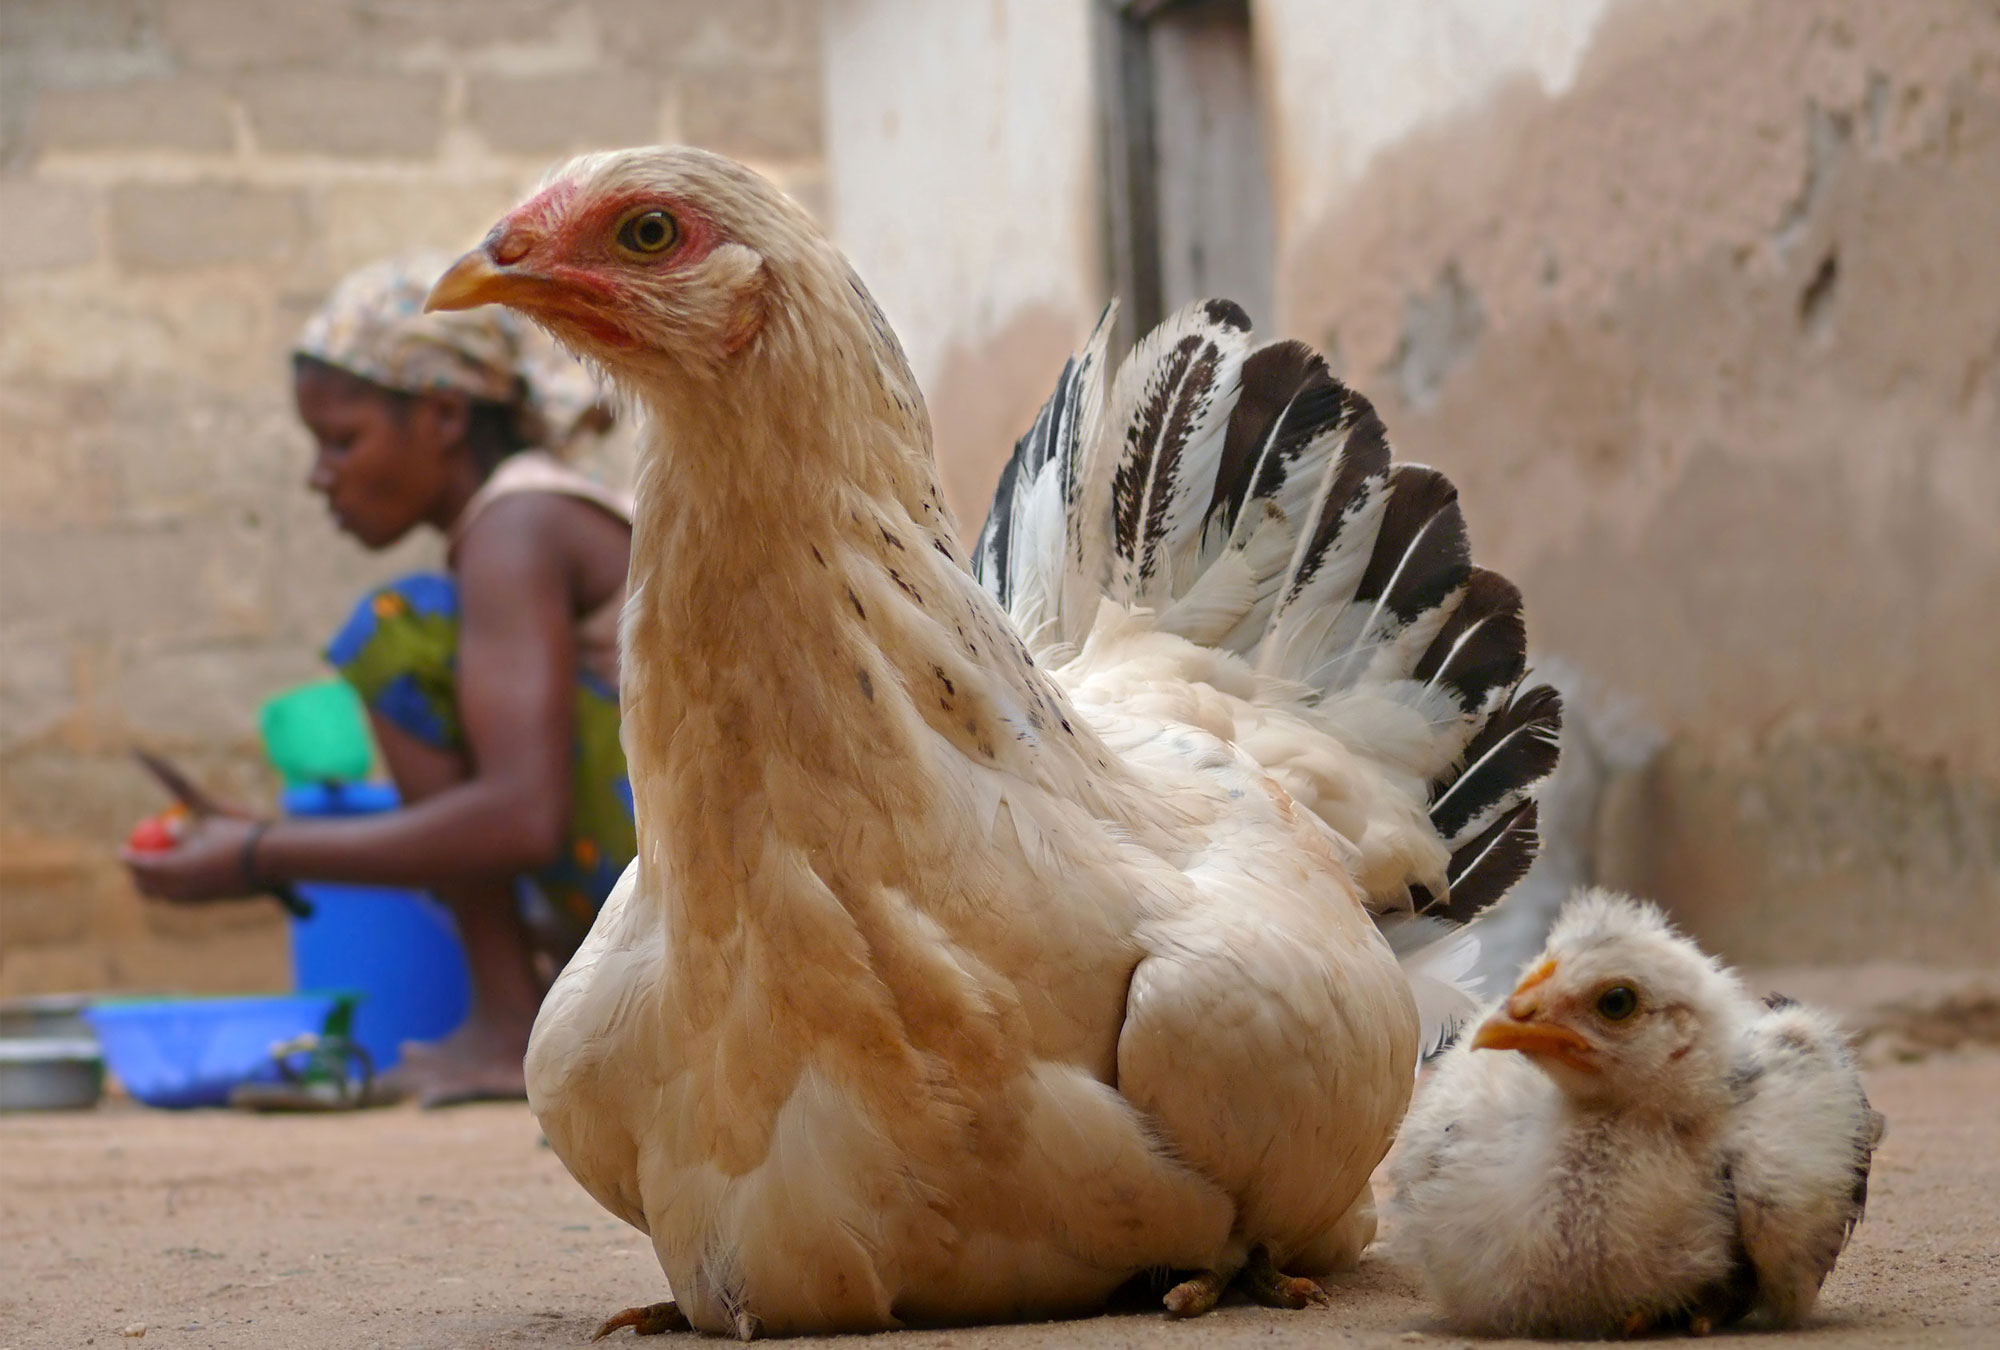 Two chickens with a woman in the background